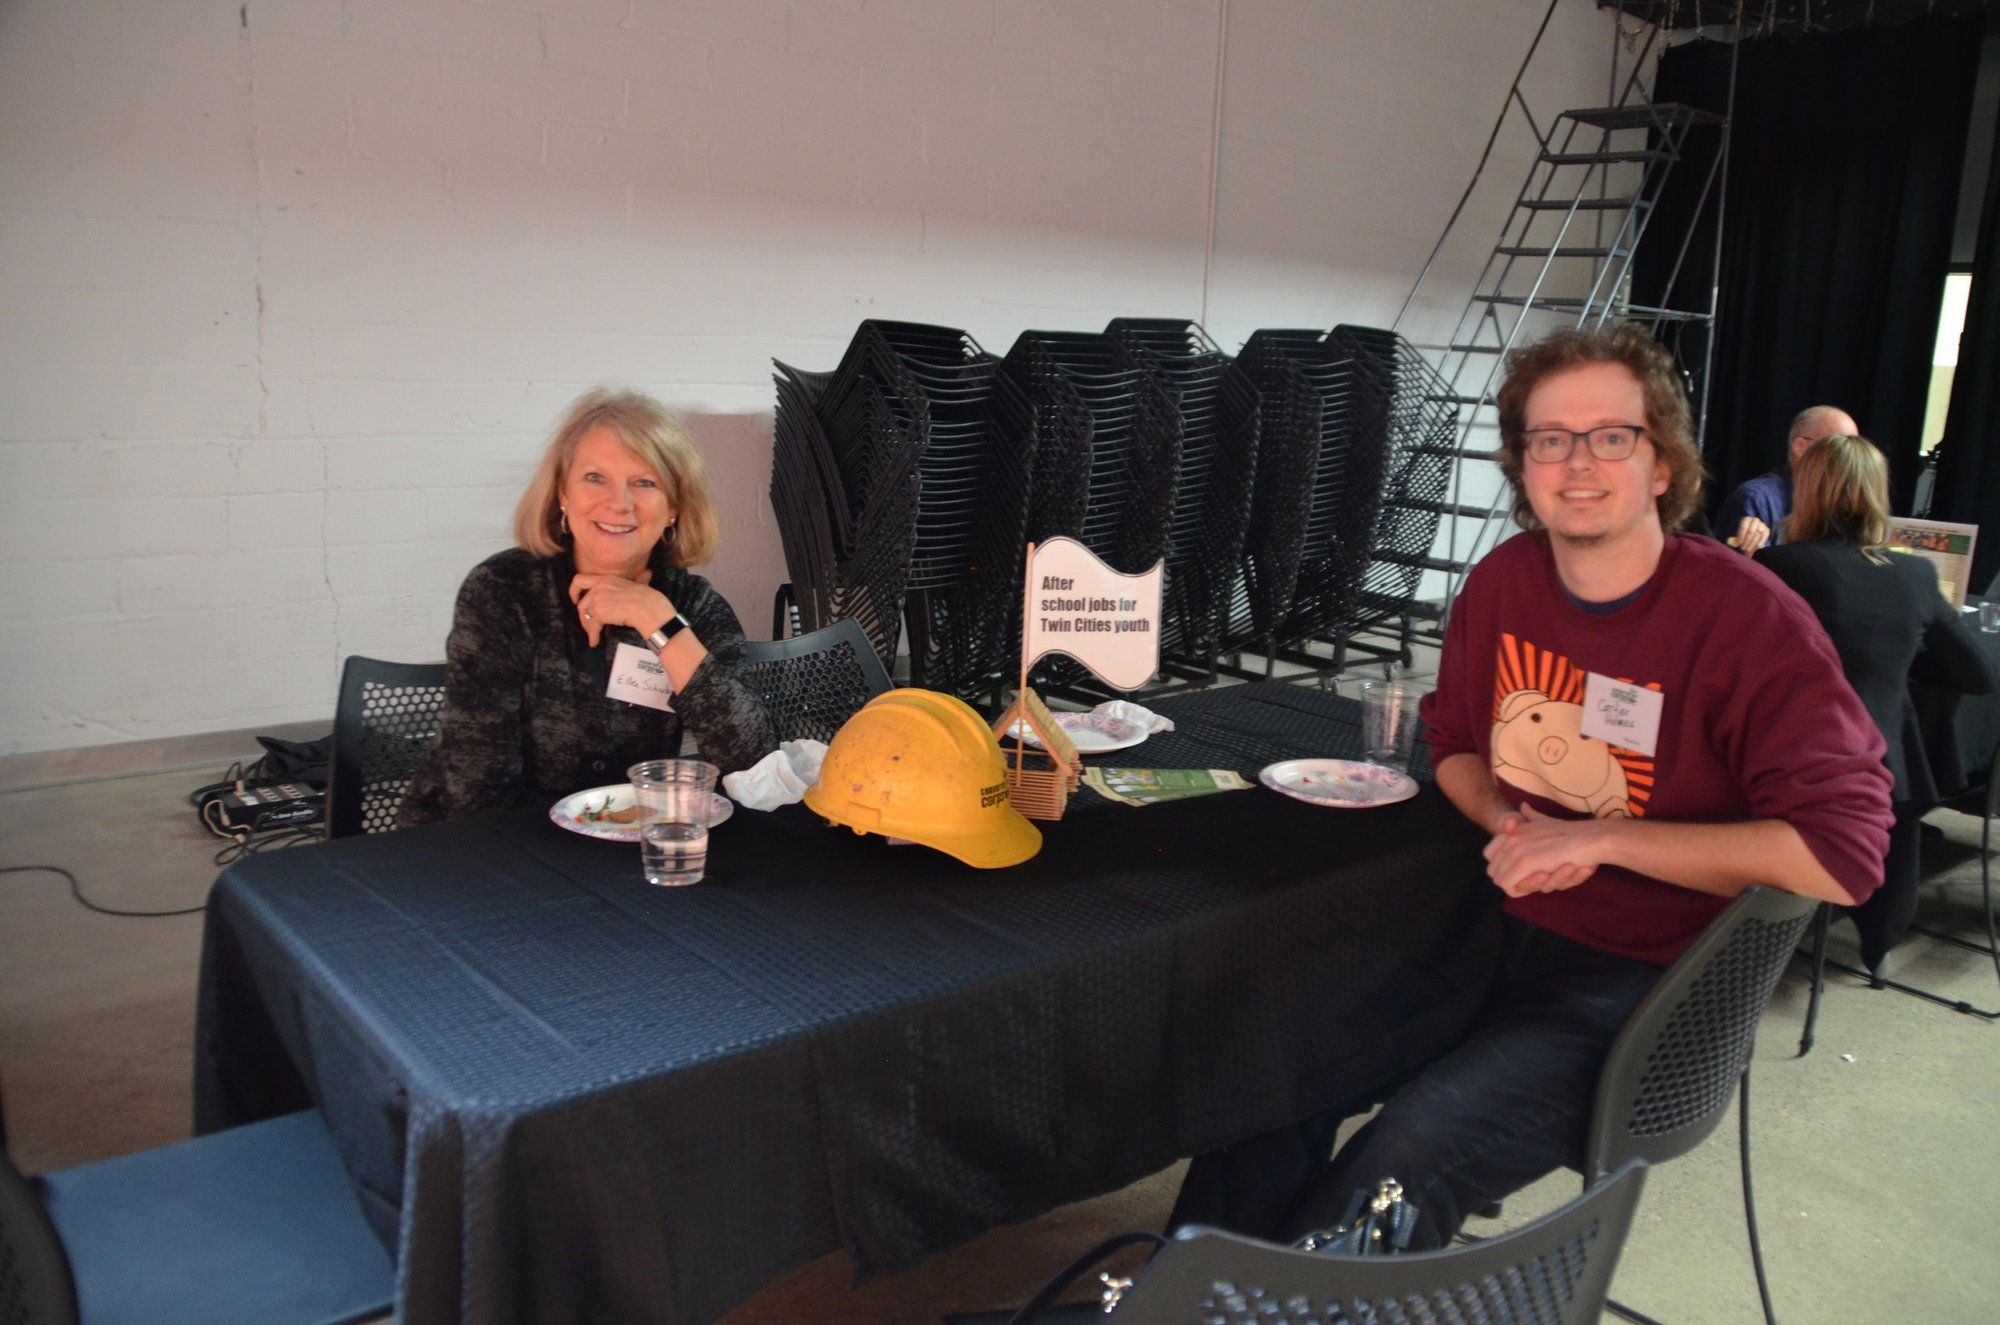 Two people sitting at table